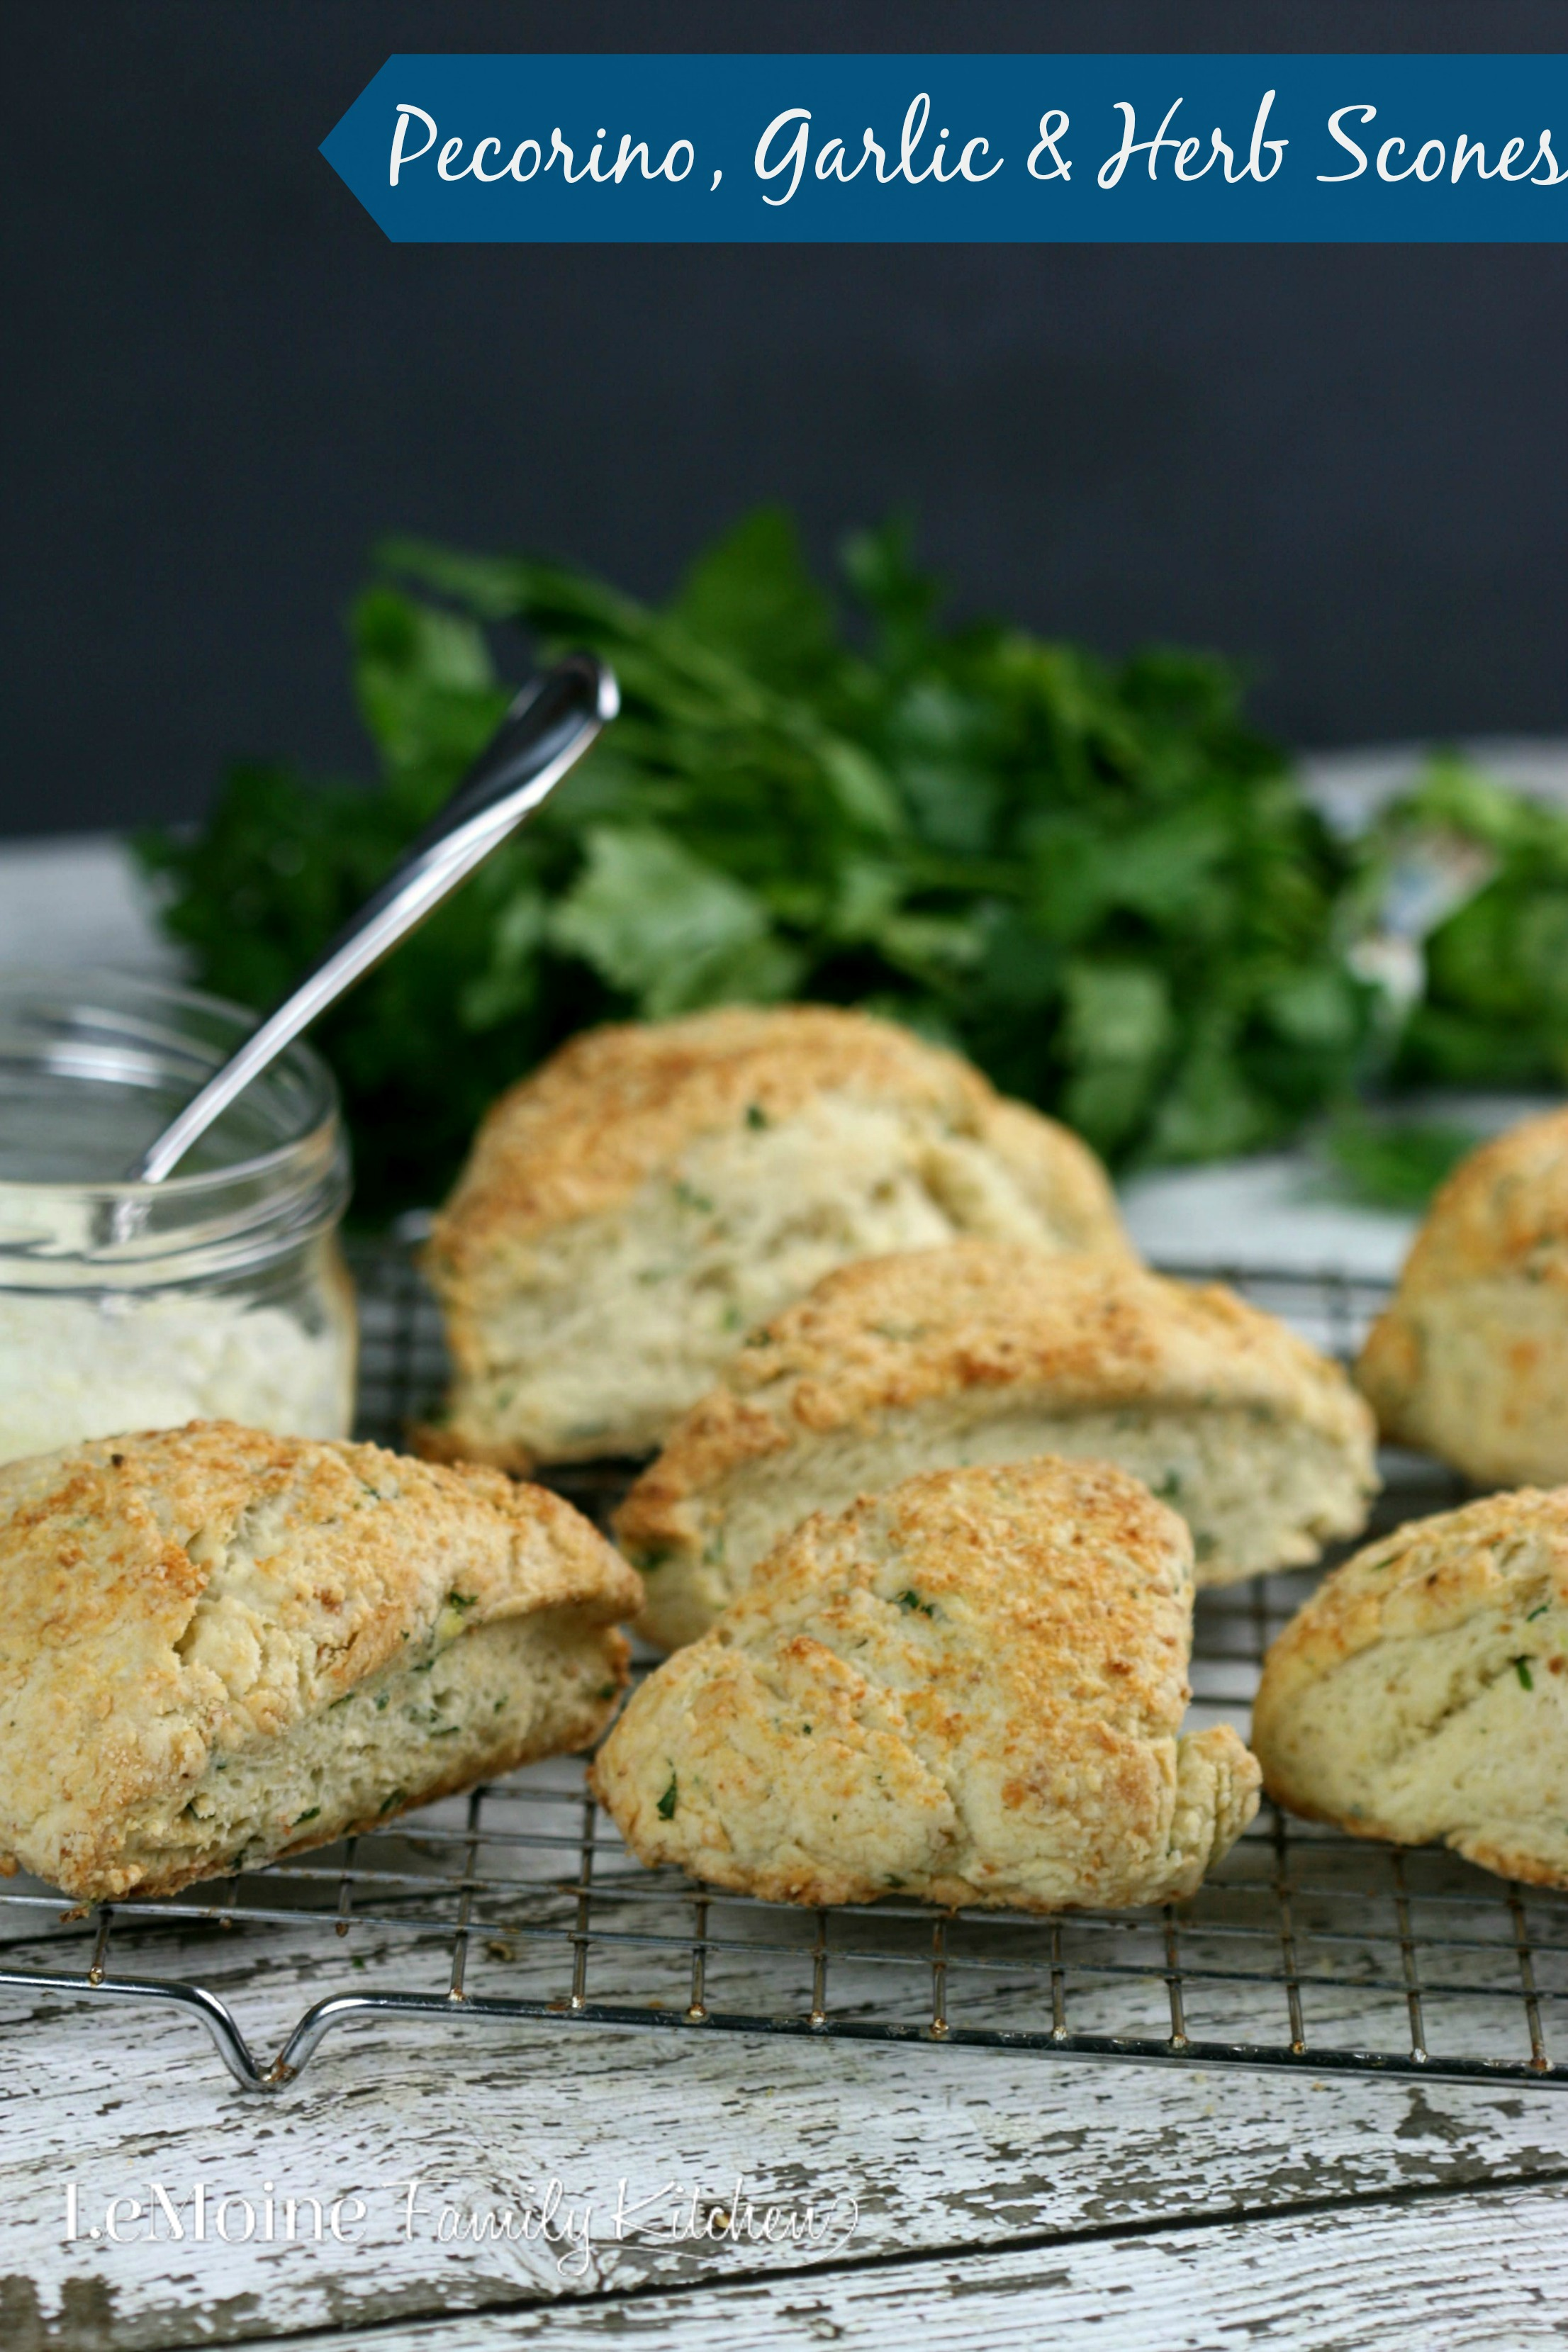 Pecorino, Garlic & Herb Scones